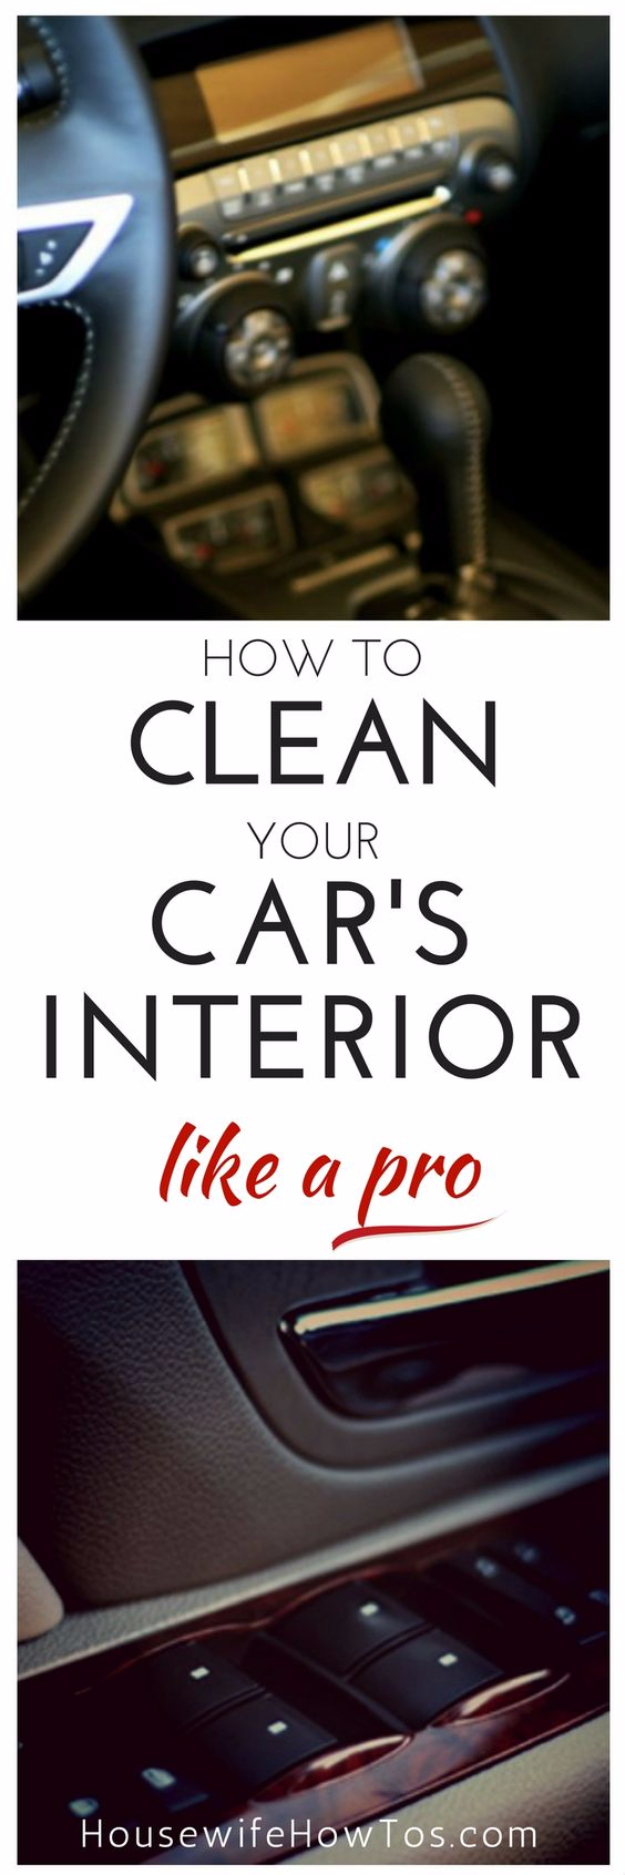 DIY Car Accessories and Ideas for Cars - Clean Your Car's Interior Like A Pro - Interior and Exterior, Seats, Mirror, Seat Covers, Storage, Carpet and Window Cleaners and Products - Decor, Keys and Iphone and Tablet Holders - DIY Projects and Crafts for Women and Men